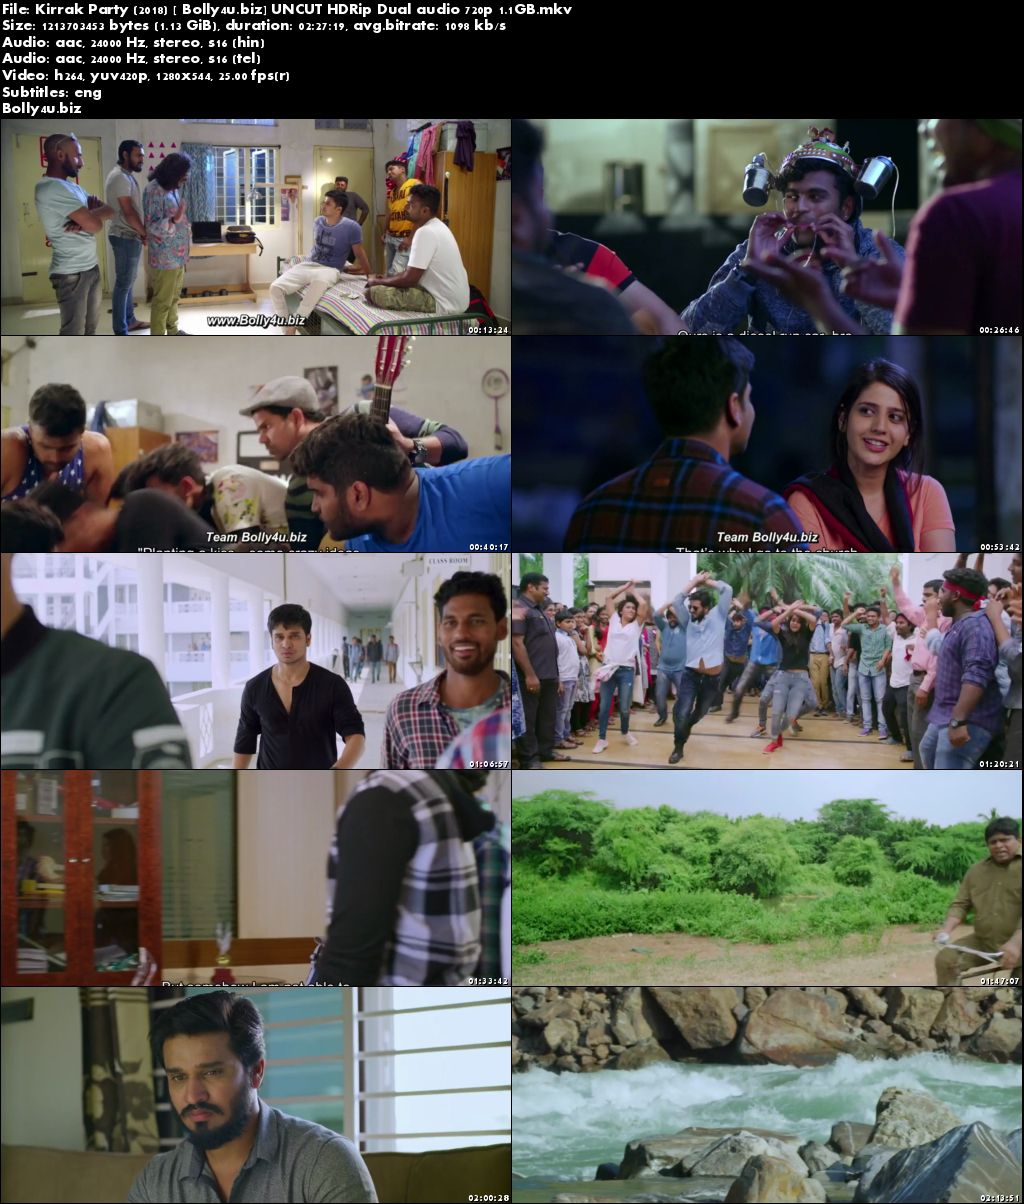 Kirrak Party 2018 HDRip UNCUT Hindi Dual Audio 720p Download